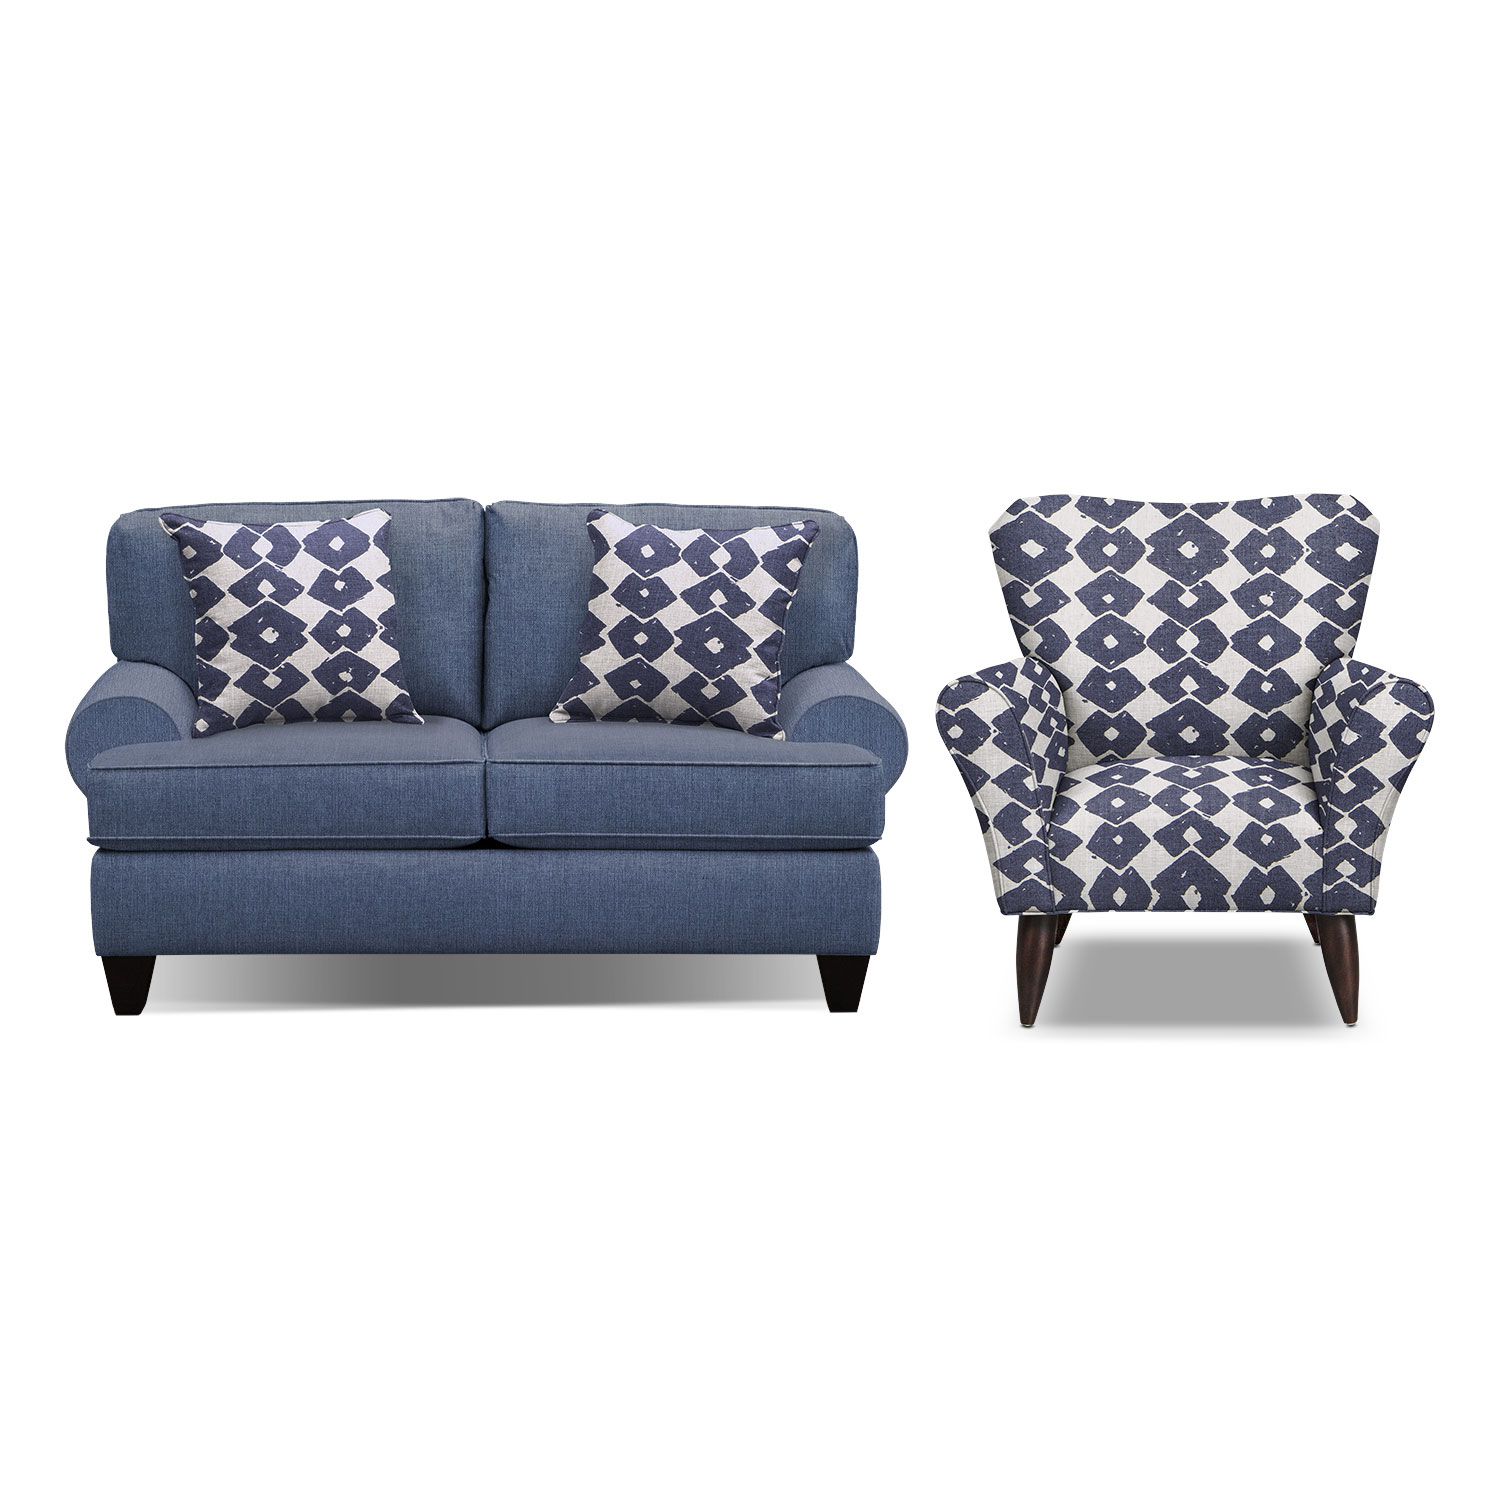 "Living Room Furniture - Bailey Blue 67"" Memory Foam Sleeper Sofa and Accent Chair Set"